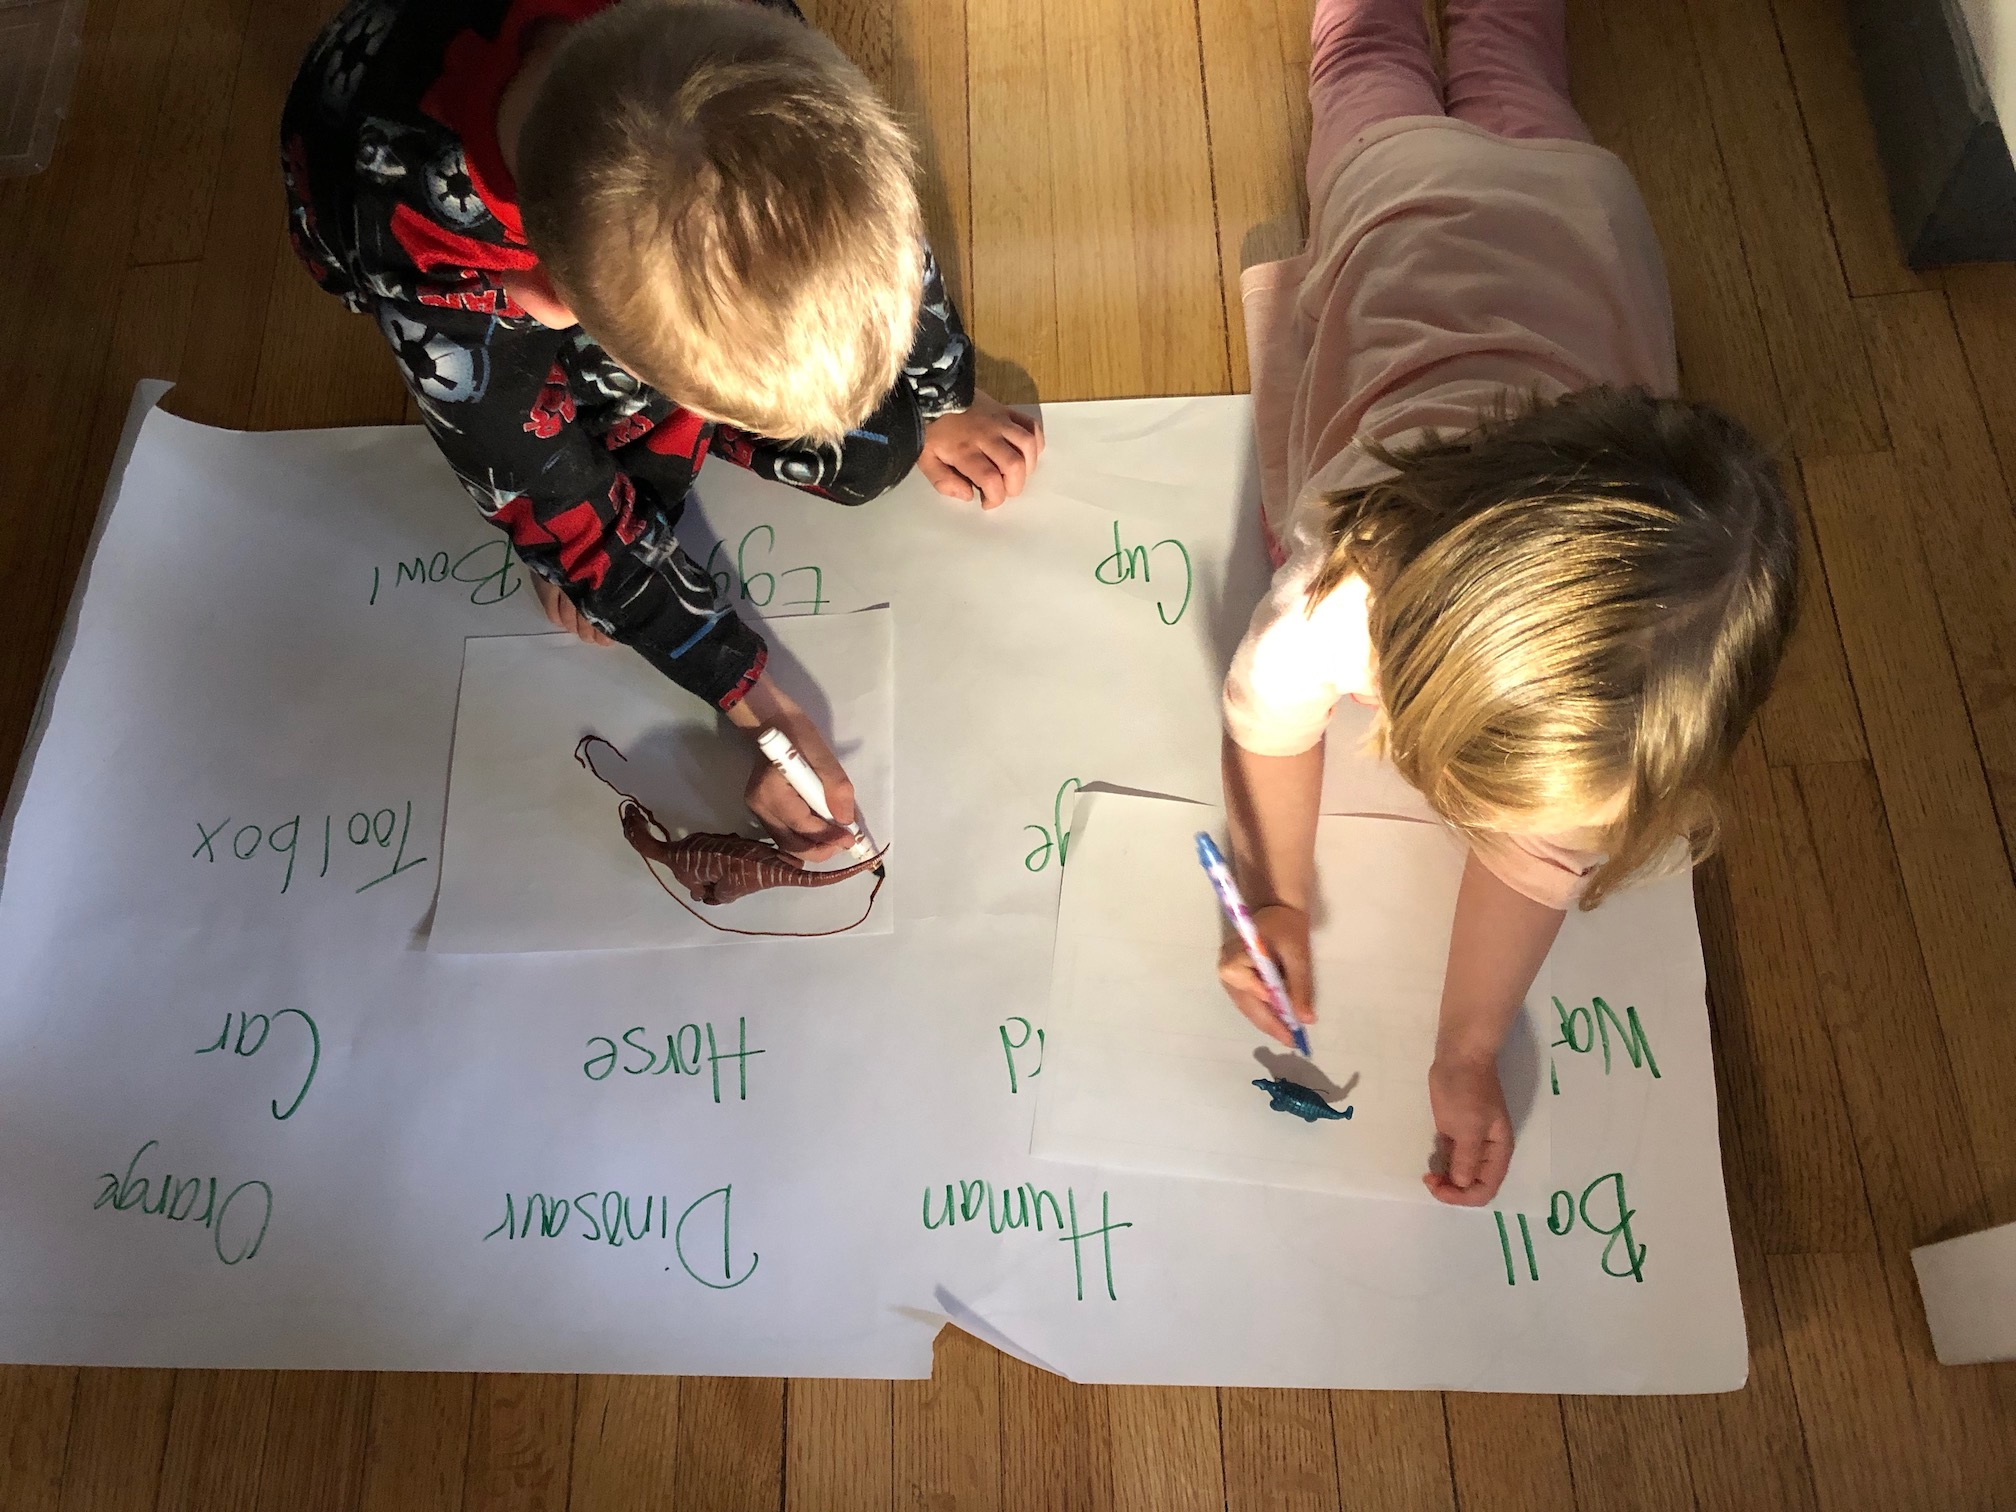 Two young children are seen drawing on white pieces of paper. Each paper has a plastic dinosaur, with a light casting a shadow on the paper.